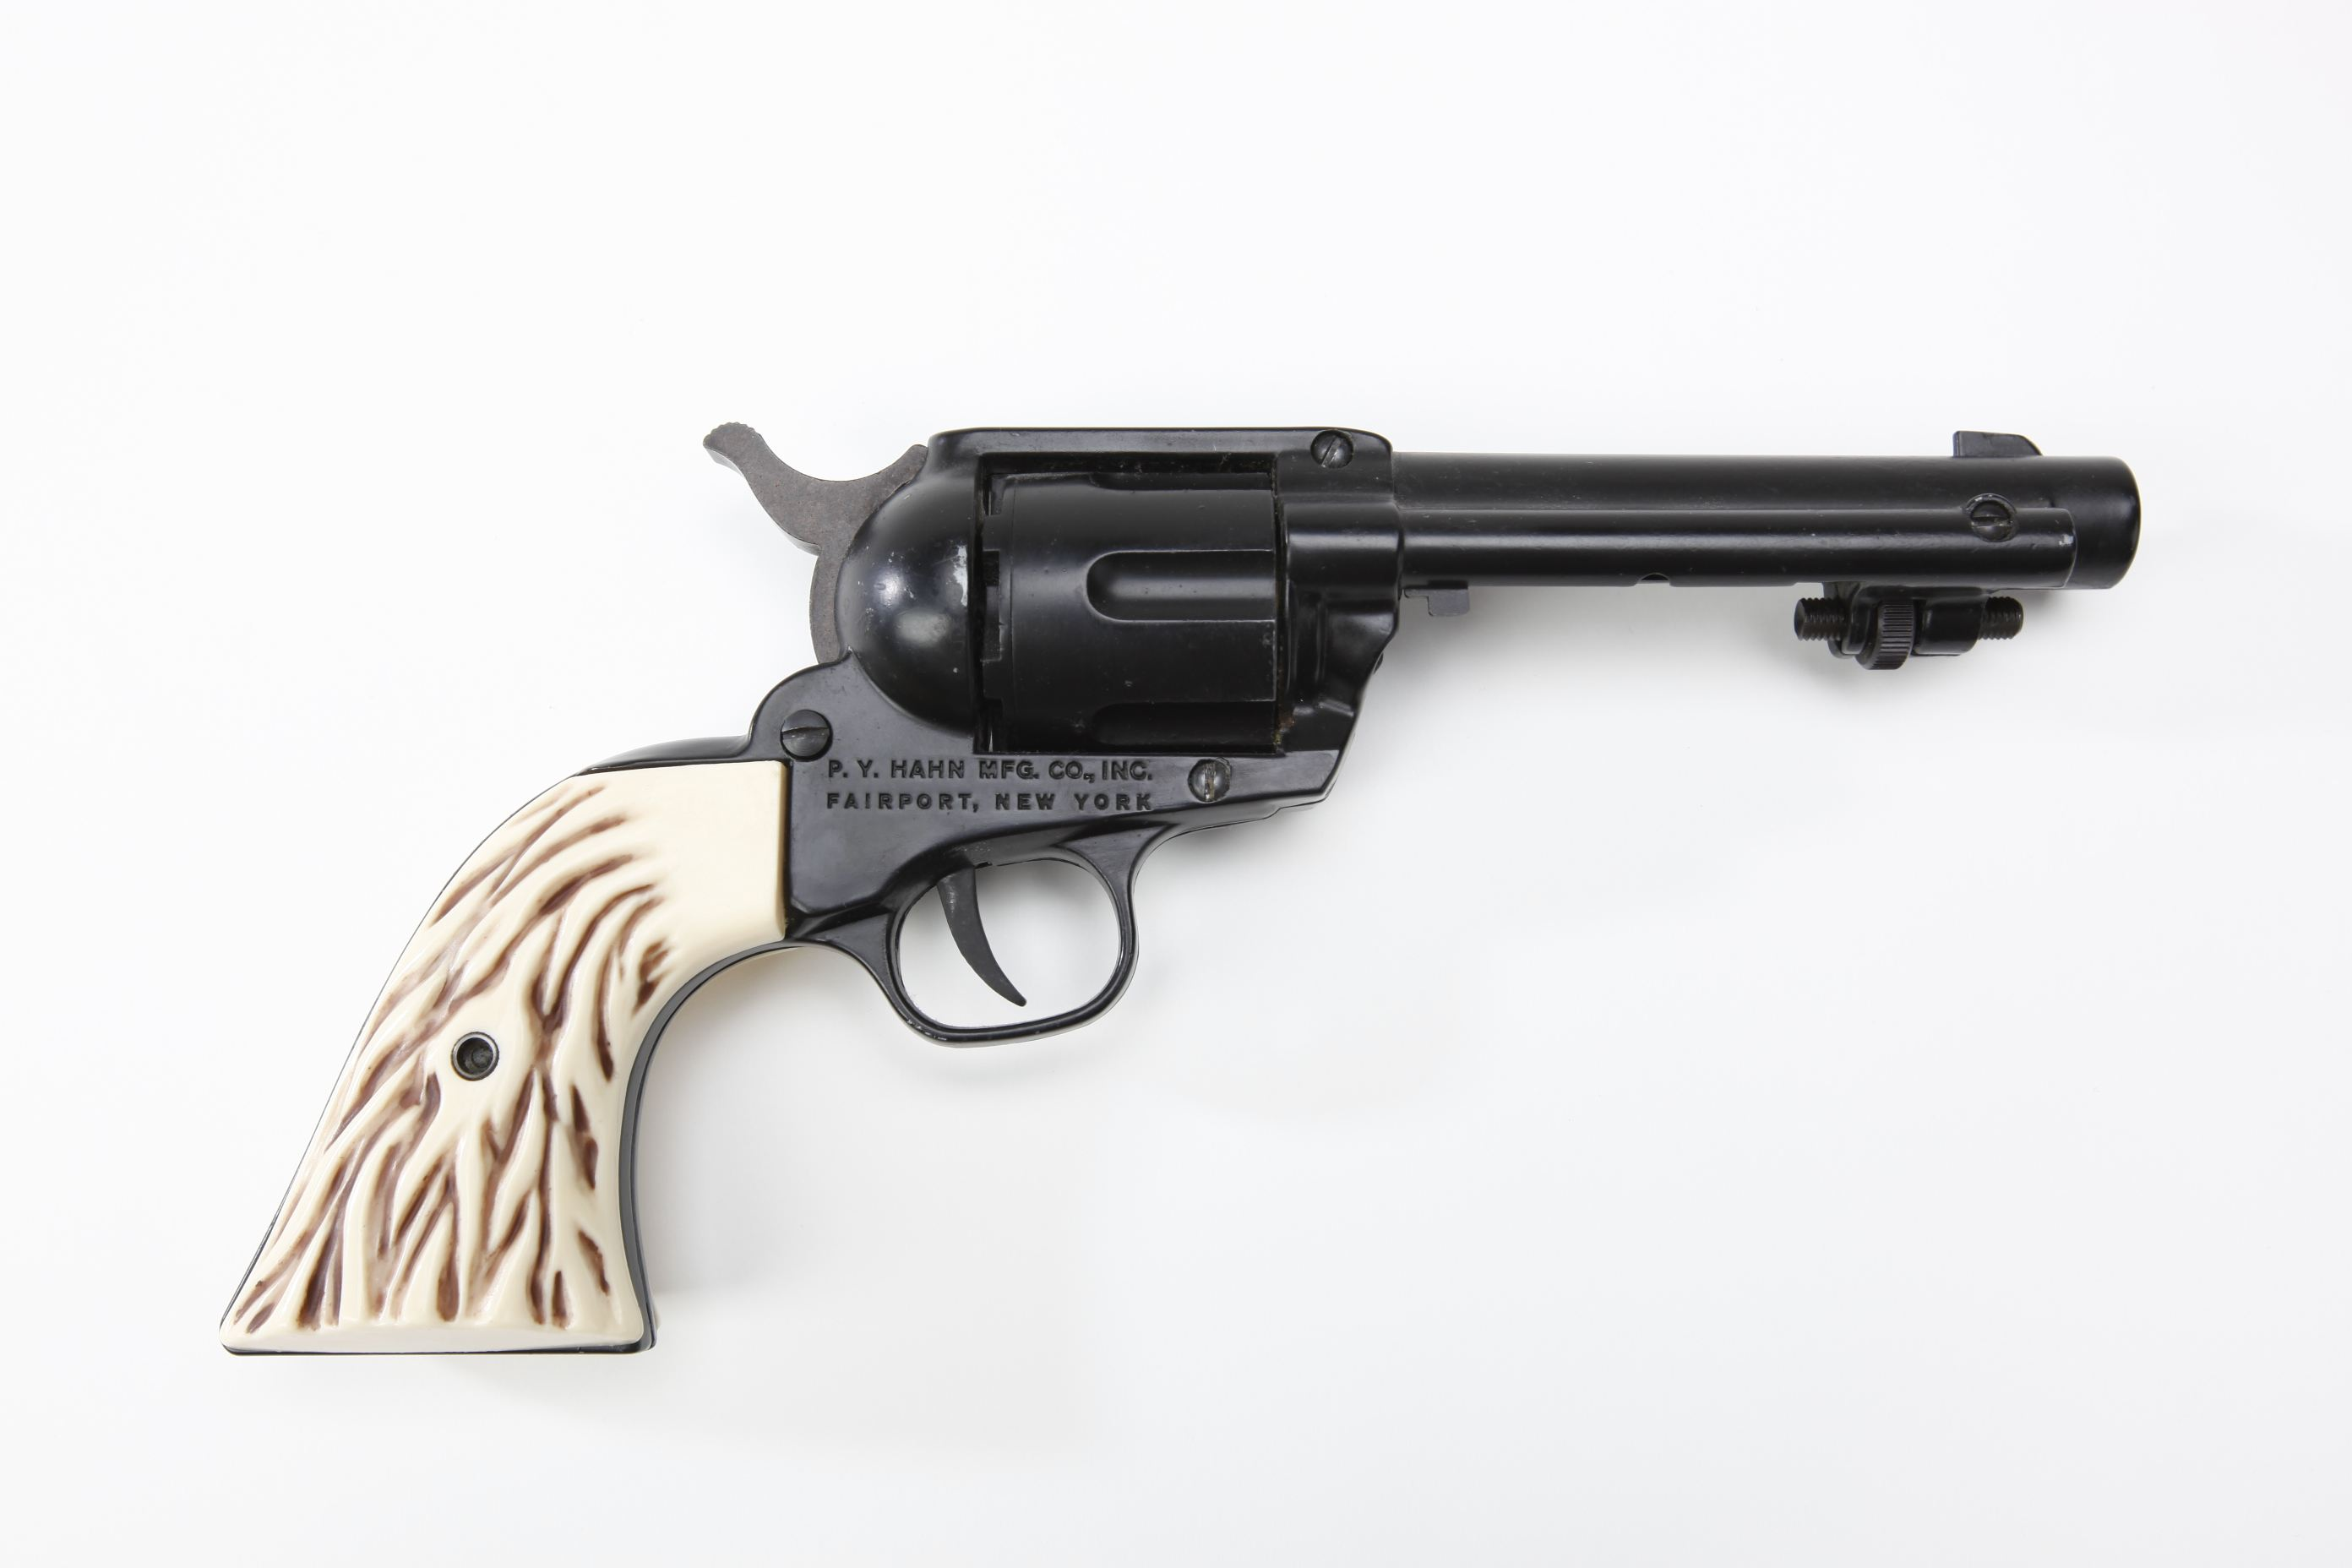 Hahn Model 45 Single Action CO2 Pistol